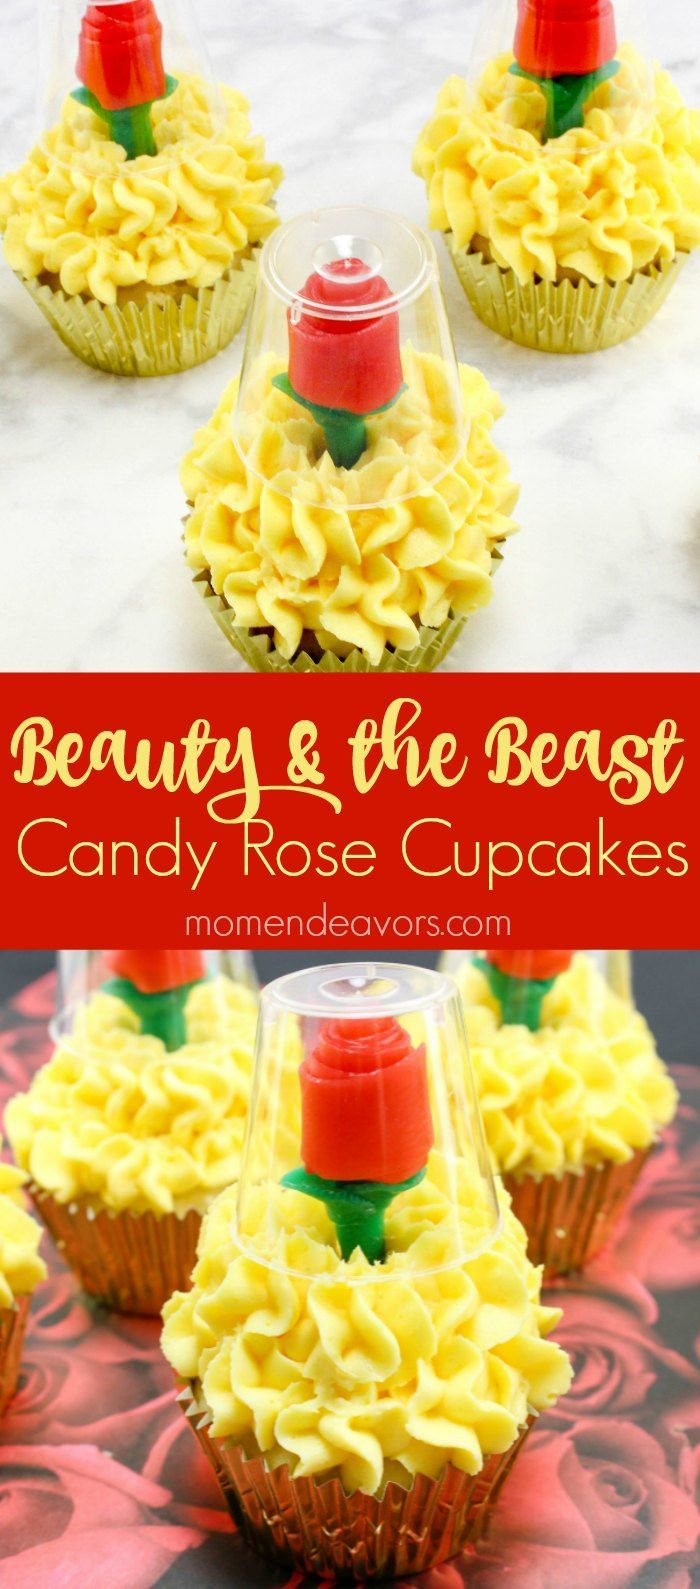 Beauty & the Beast Candy Rose Cupcakes - perfect for a Beauty and the Beast party or just some movie night fun!